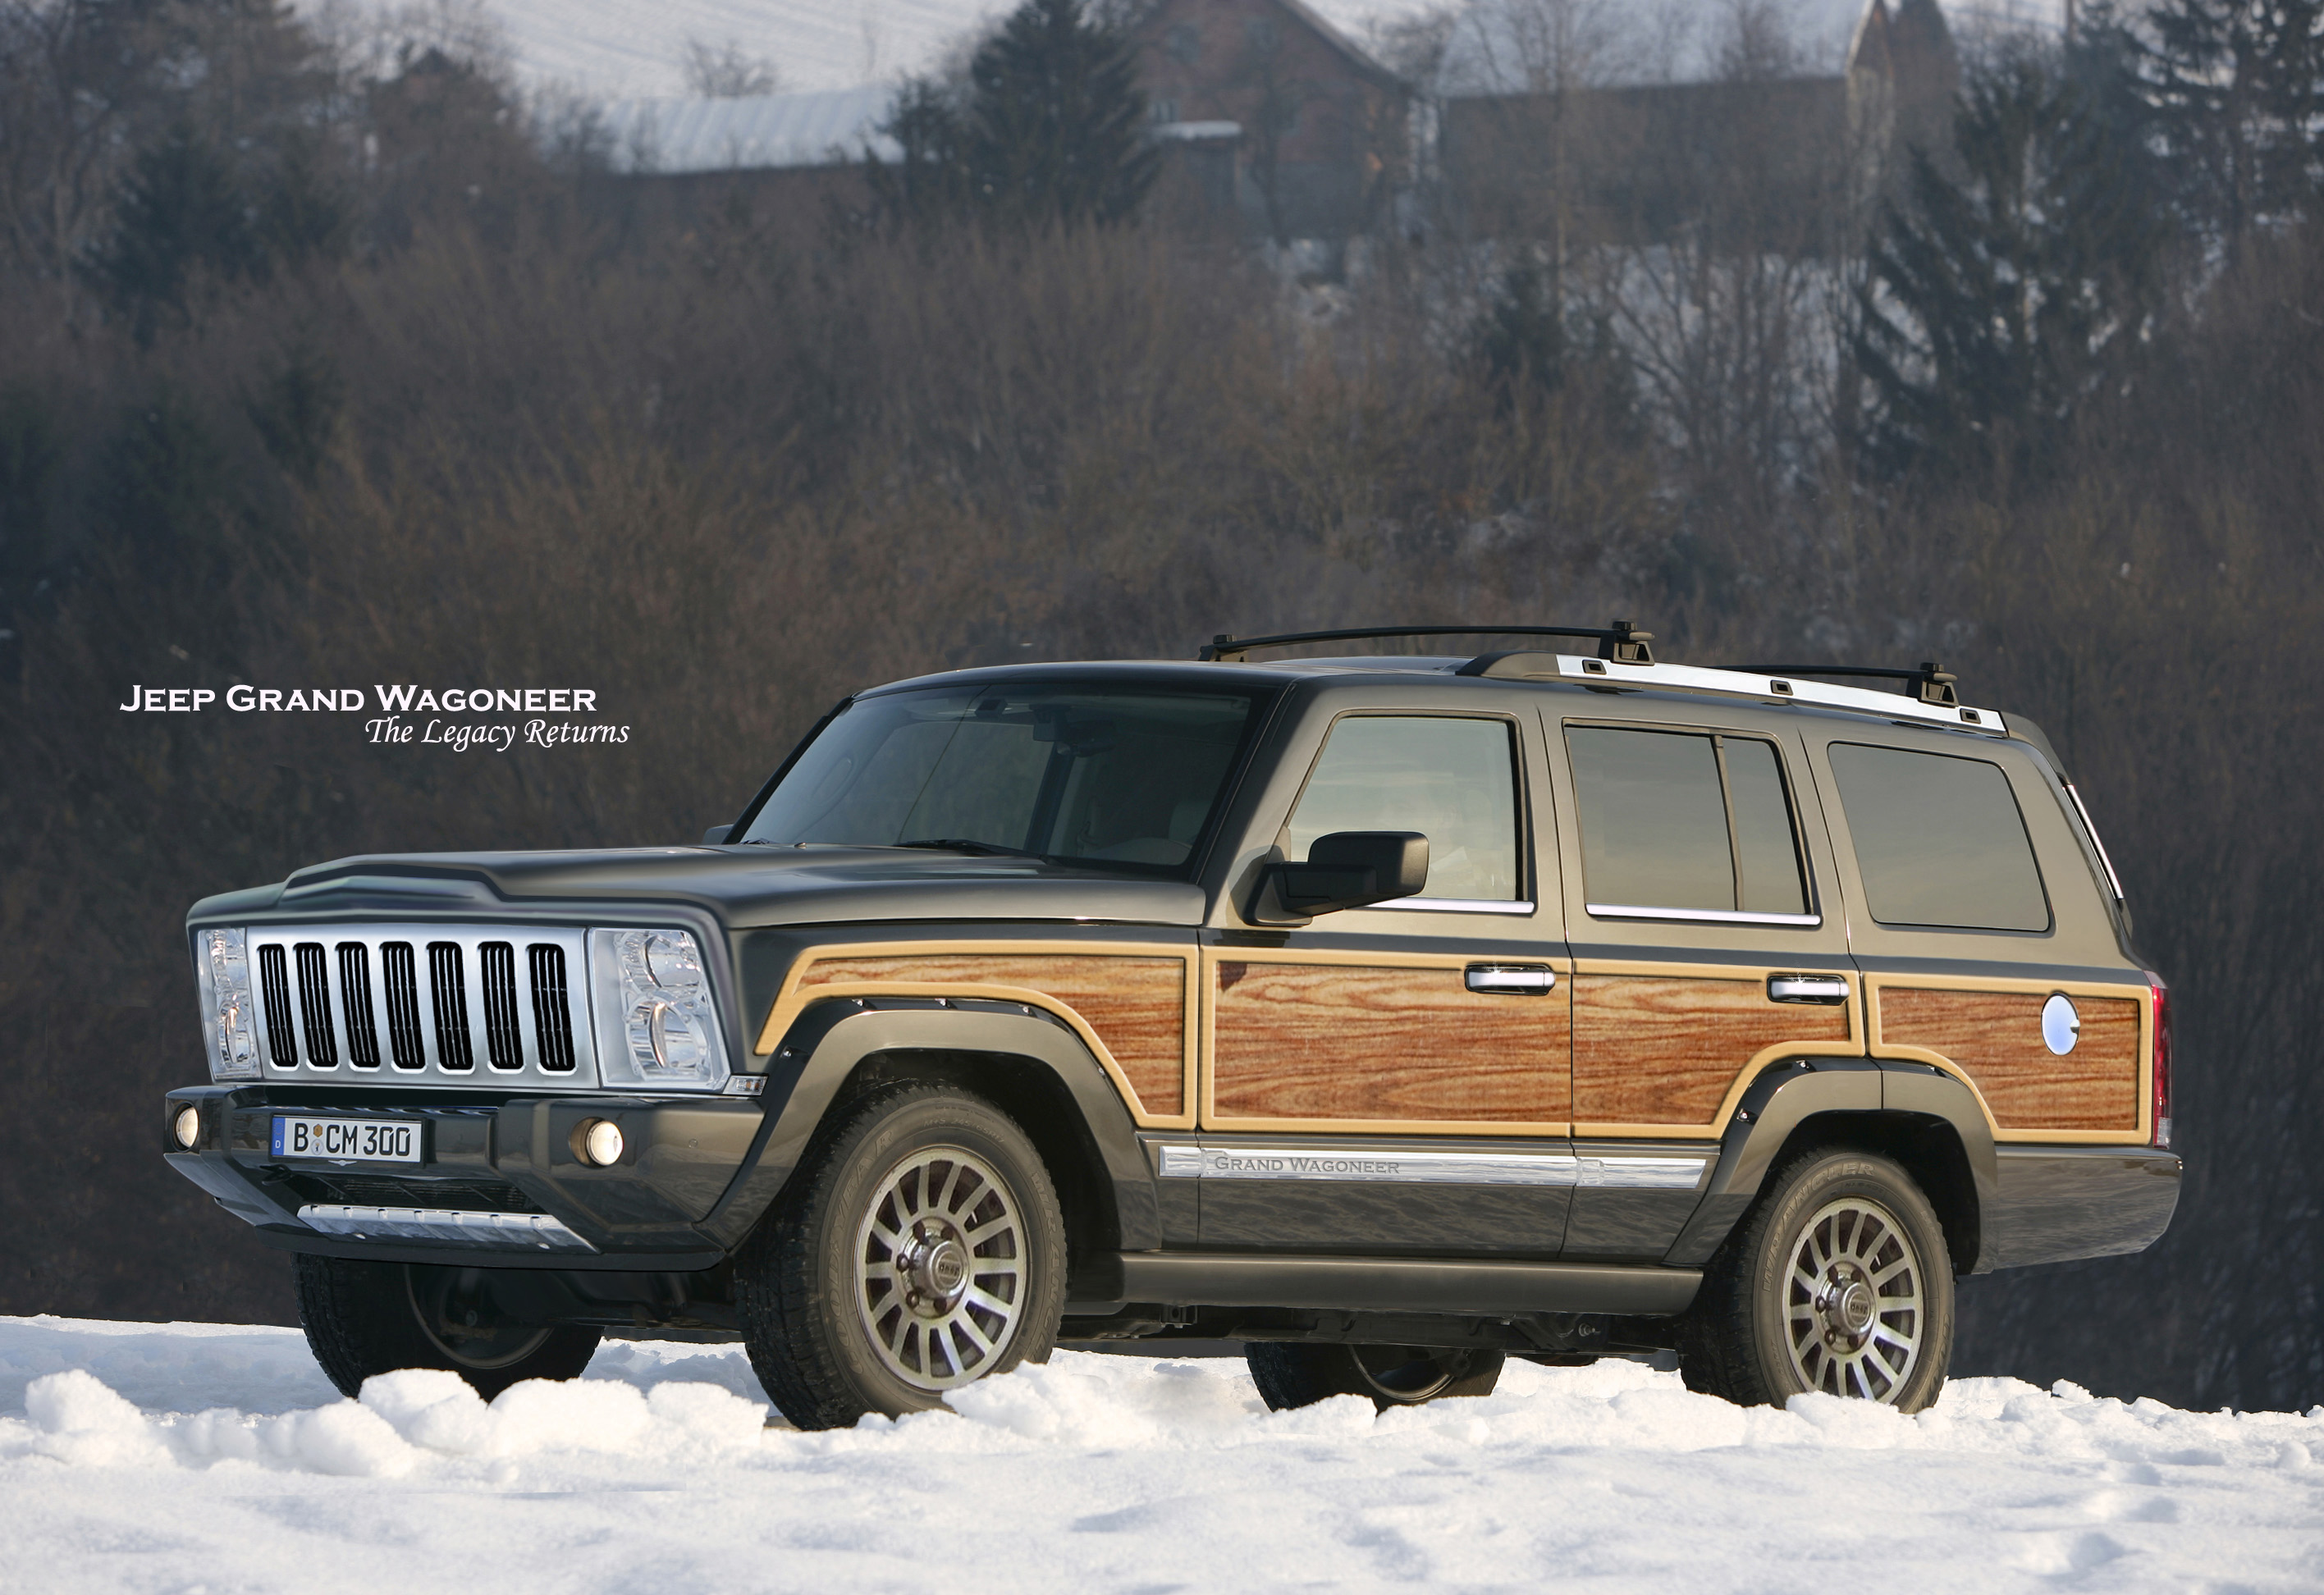 36 photos 1991 jeep grand wagoneer